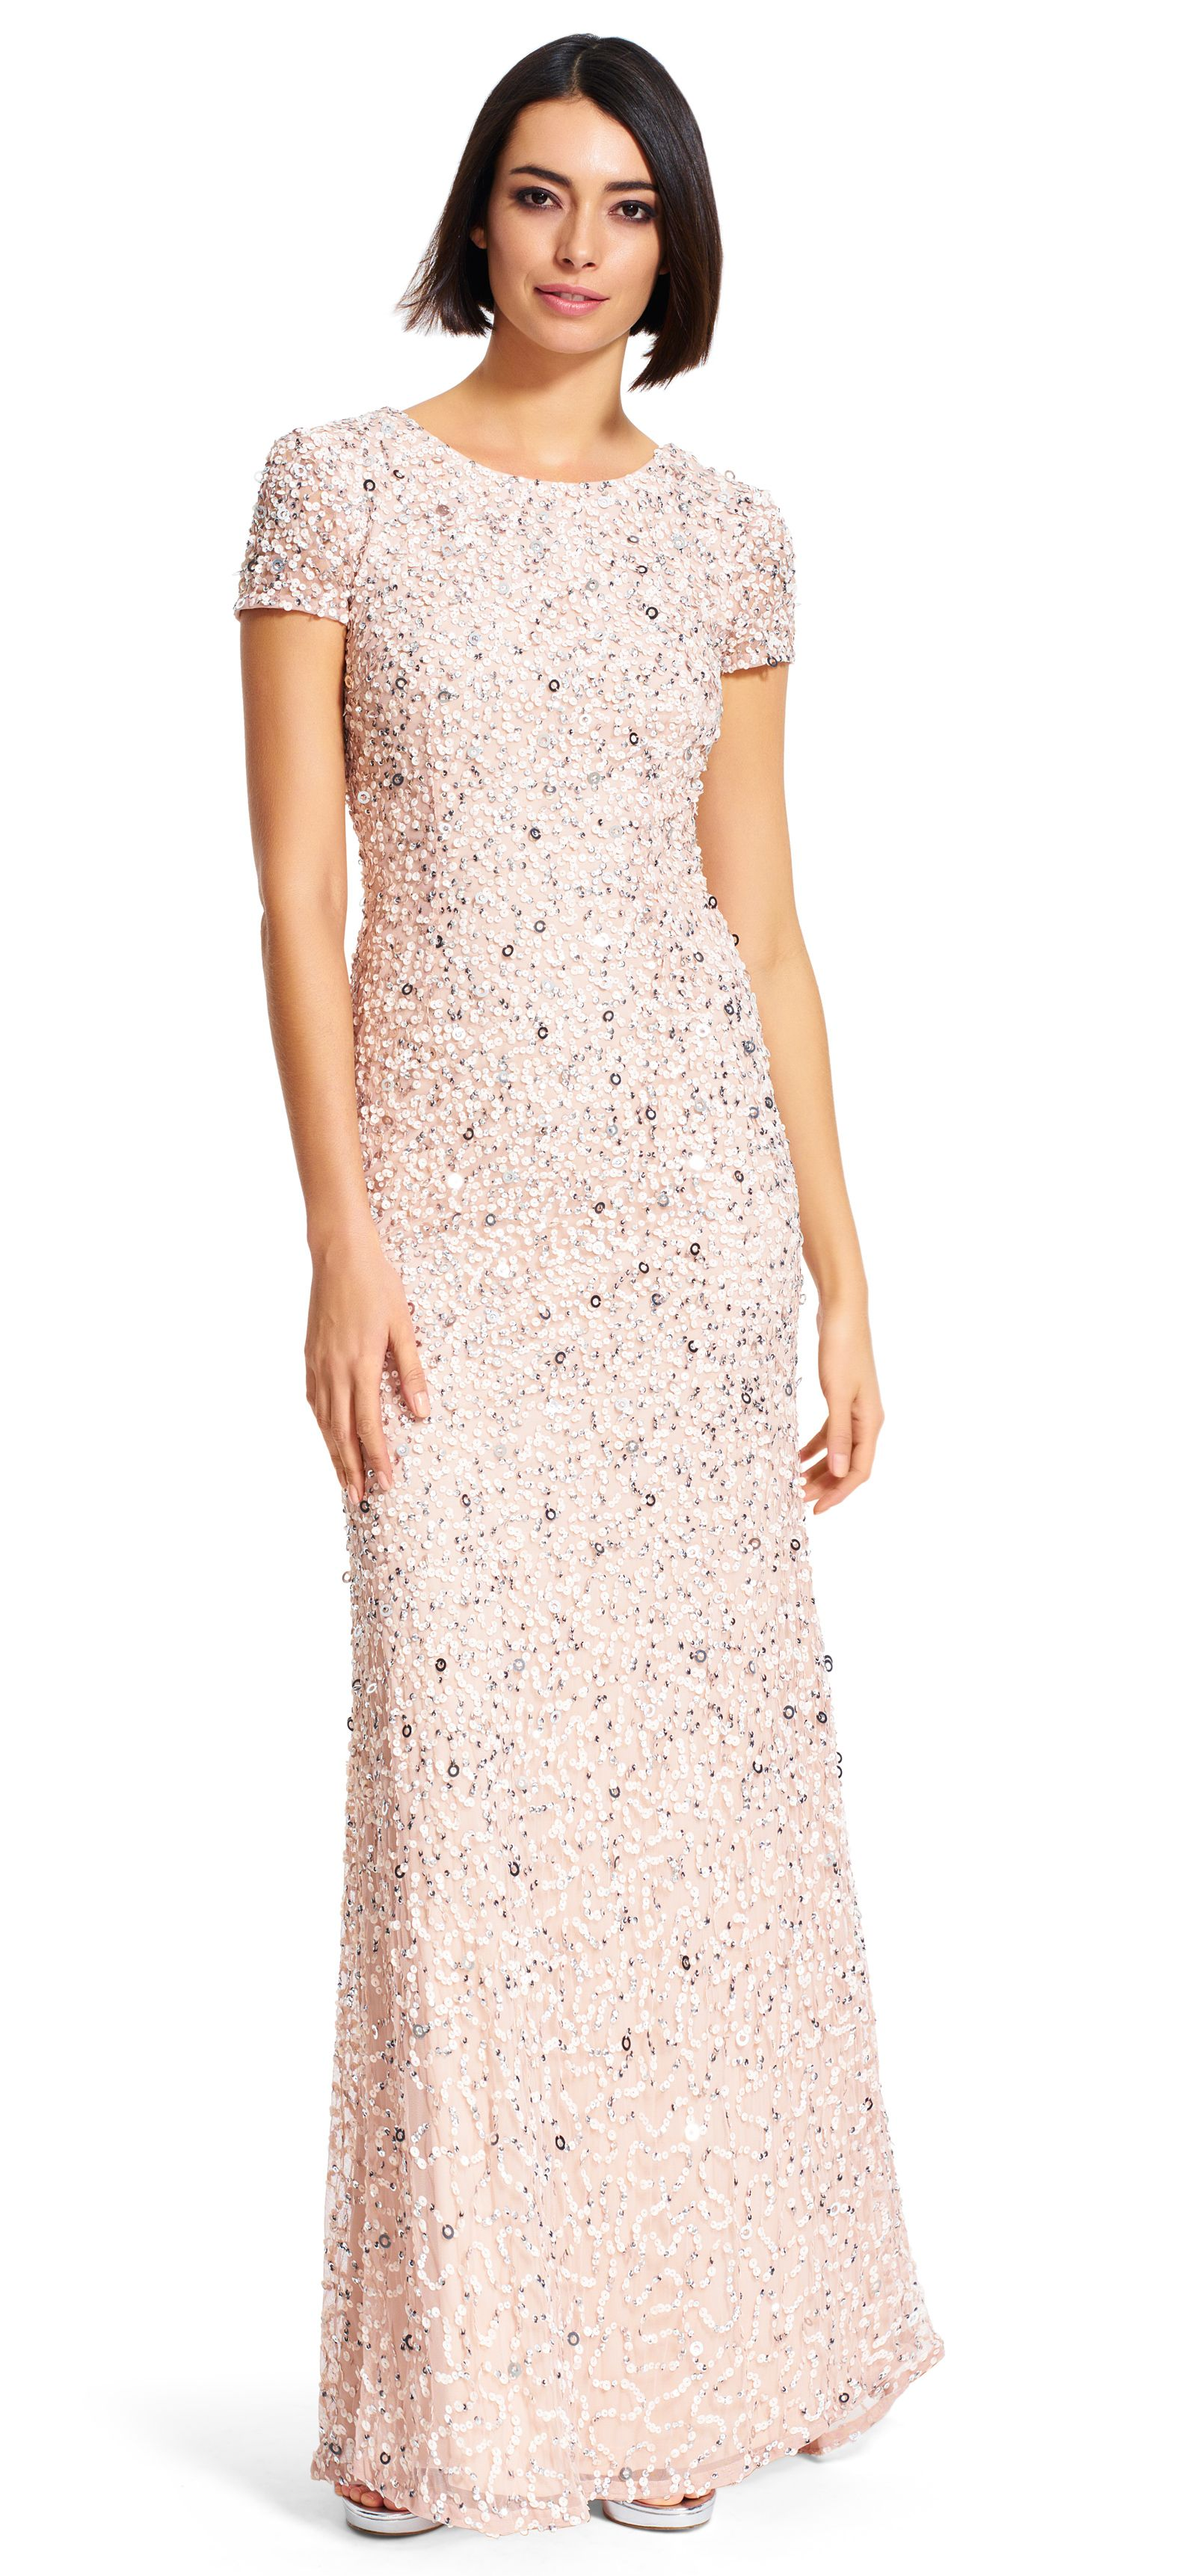 Papell cap sleeve beaded sequined gown dresses women macy s - Adrianna Papell Style 091874600 Mob Dressesbeaded Dressesbridesmaid Dressessequin Gownadrianna Papellmother Of The Bridevowscap Sleeveszippers